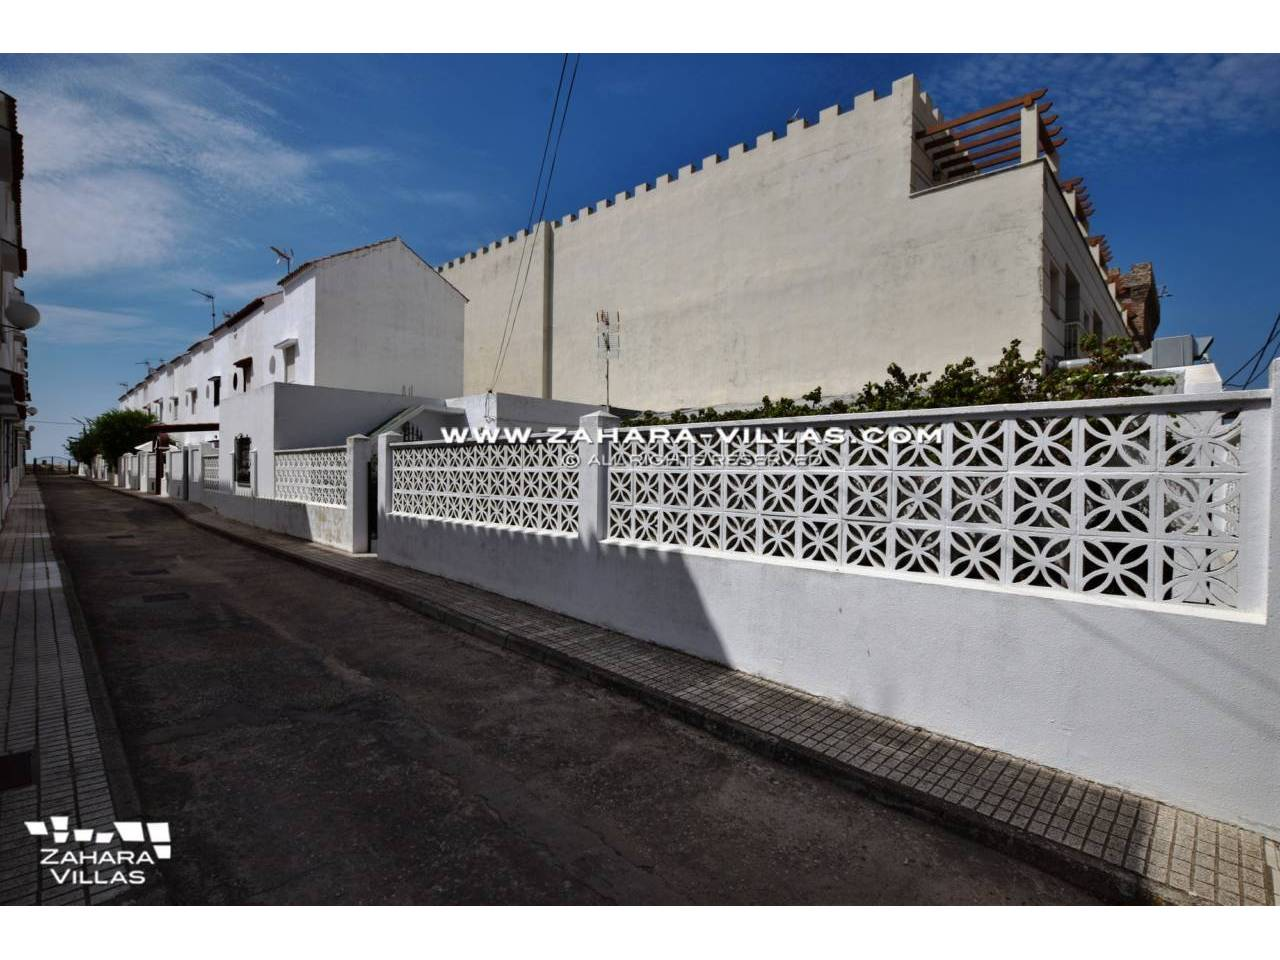 Imagen 17 de House in Avda. Del Pradillo for sale in the town of Zahara de los Atunes